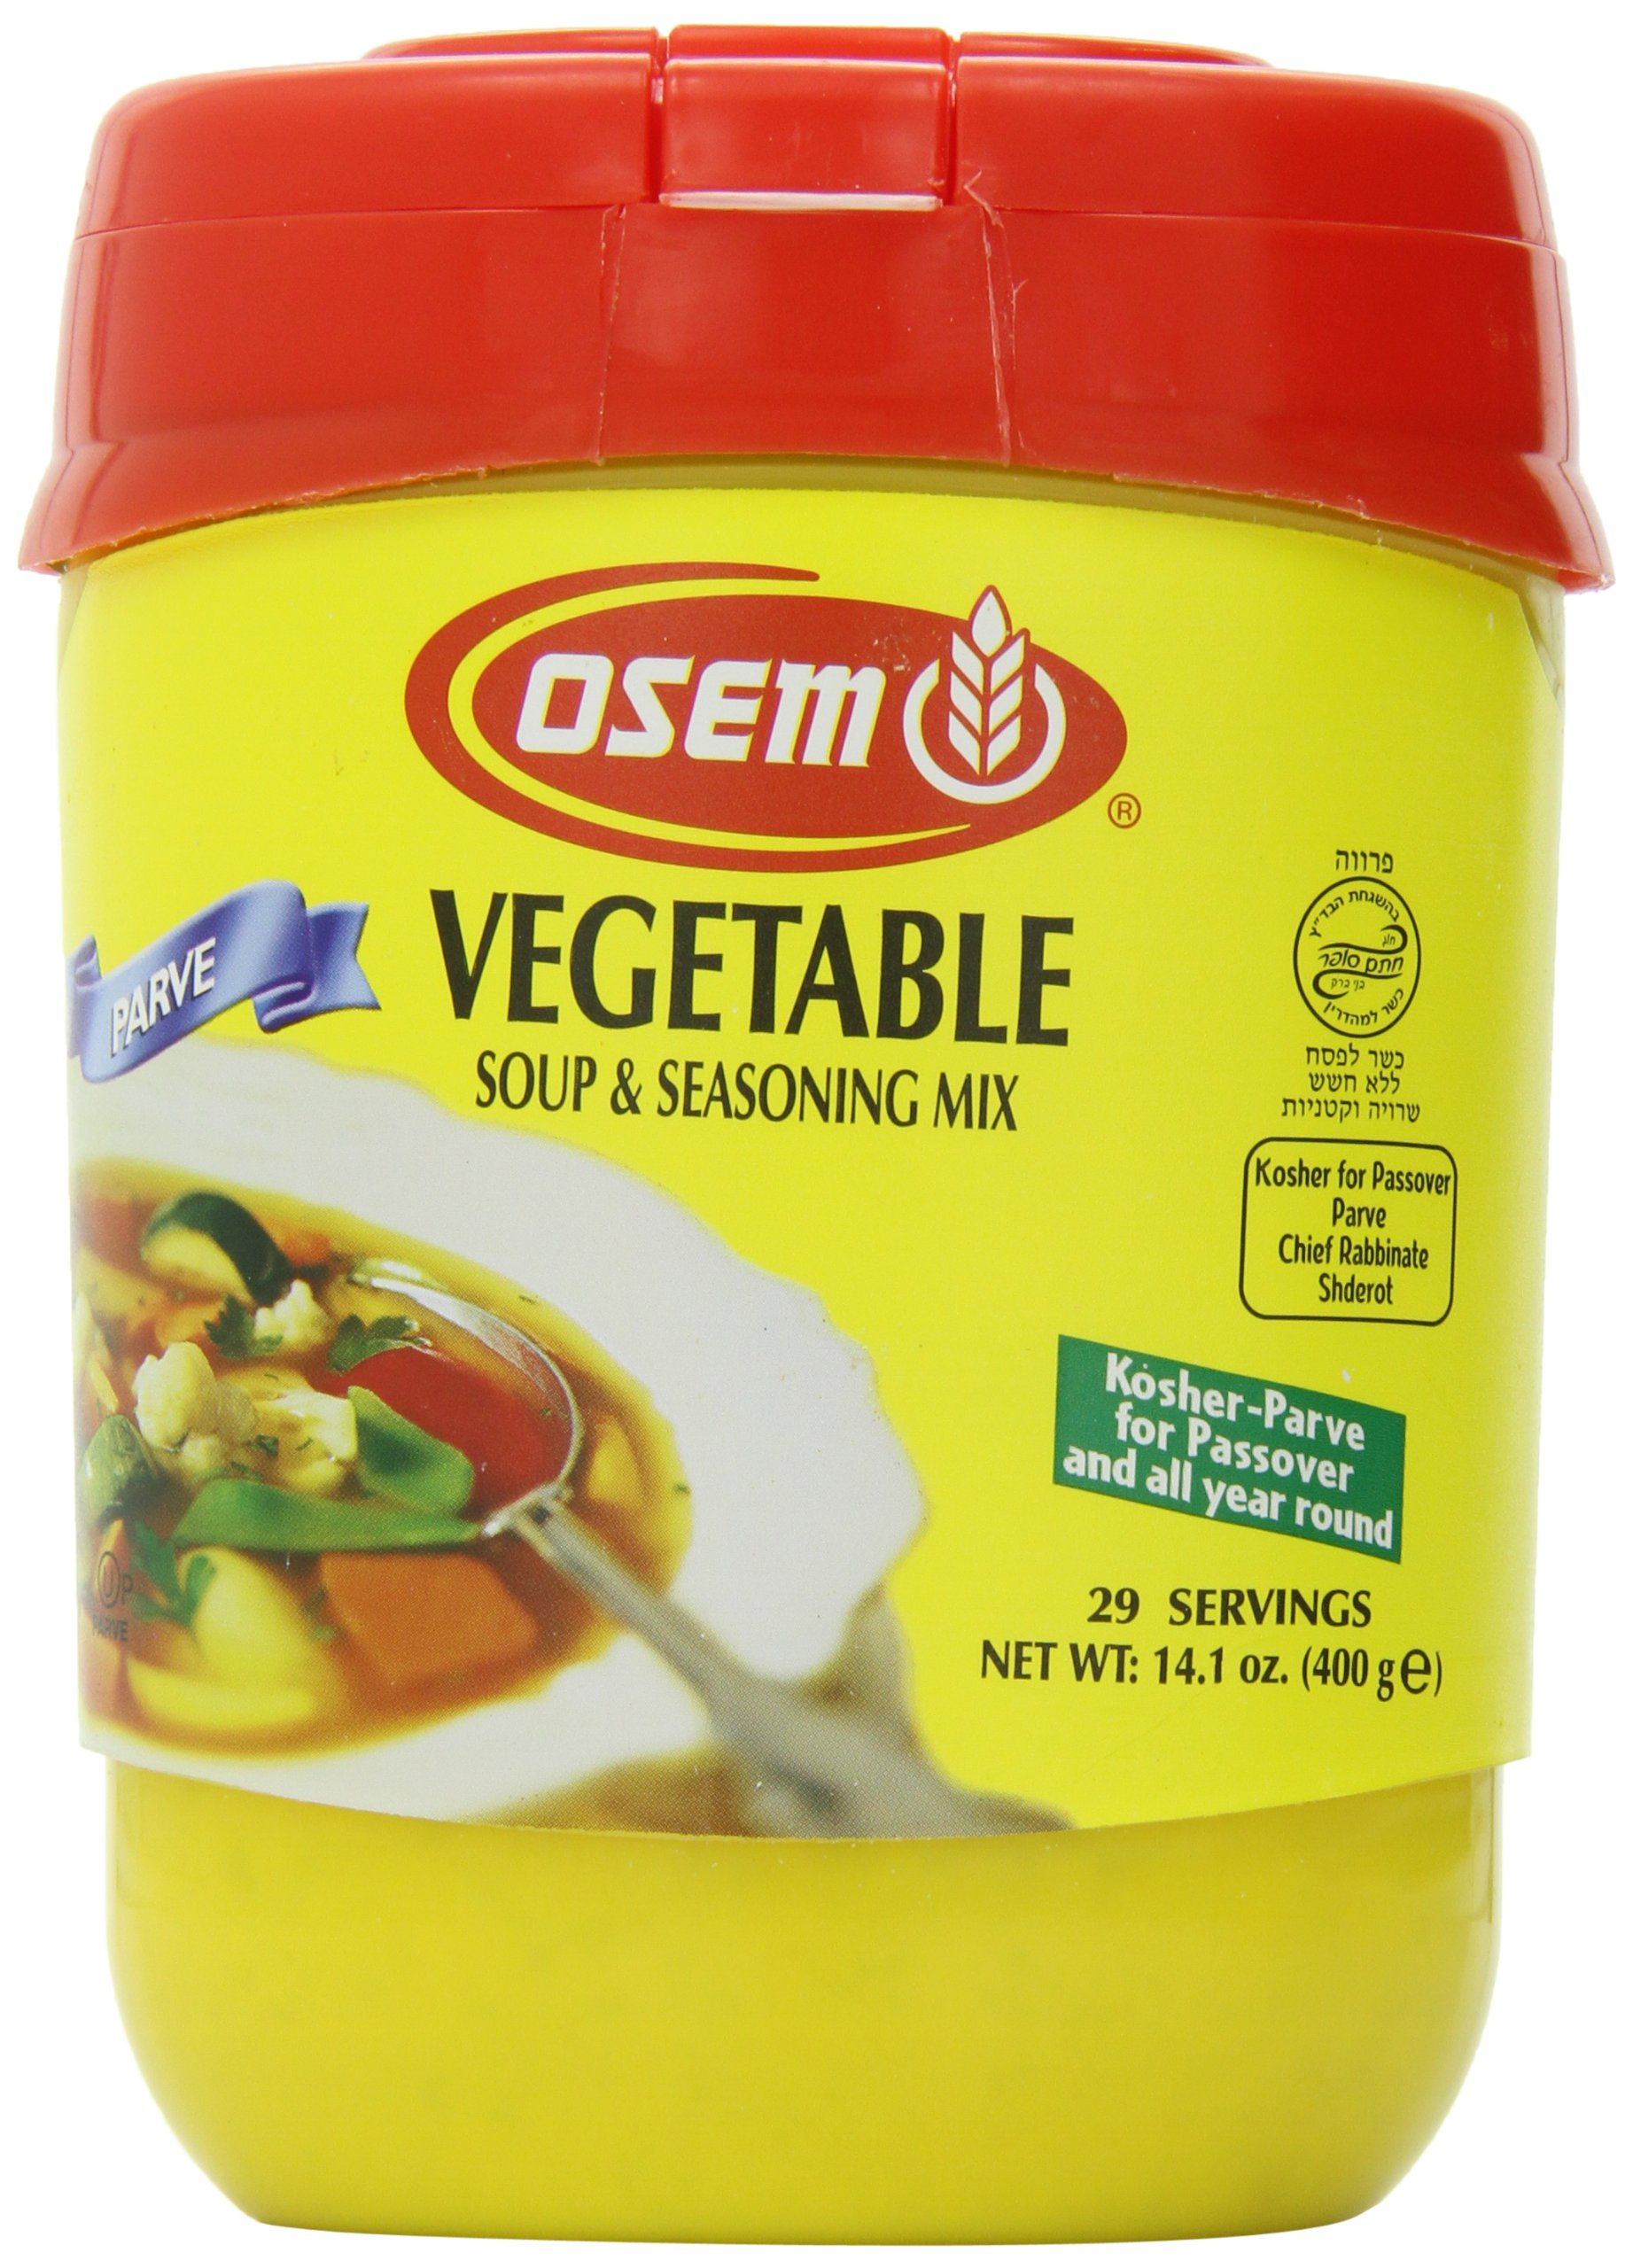 Osem Soup & Seasoning Mix, Vegetable, 14.1-Ounce Containers (Pack of 6)